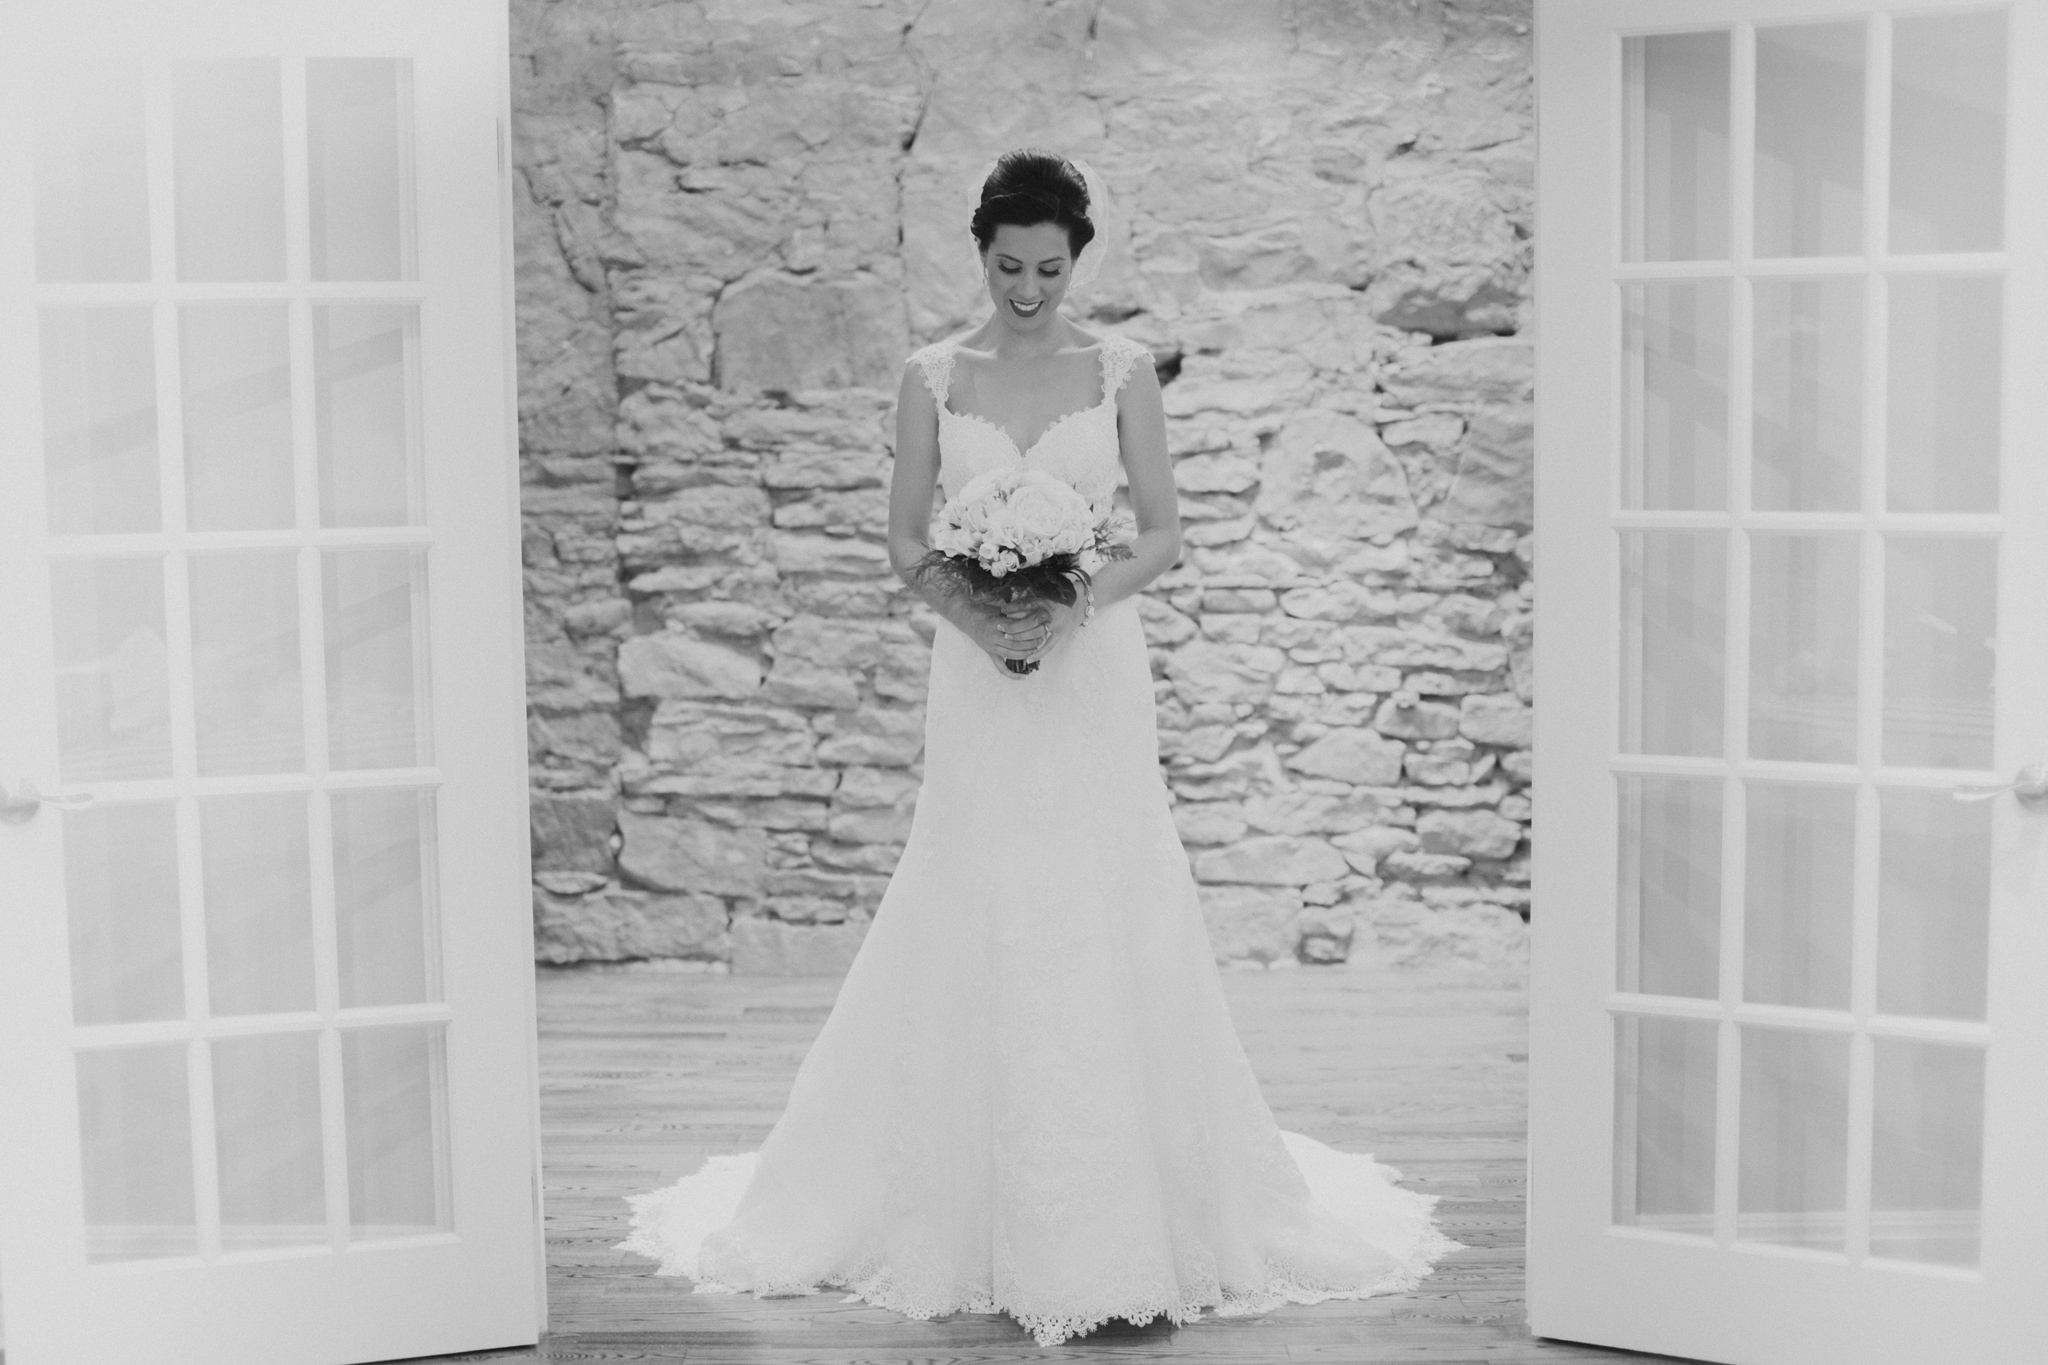 Portrait of bride in wedding dress framed by doorway